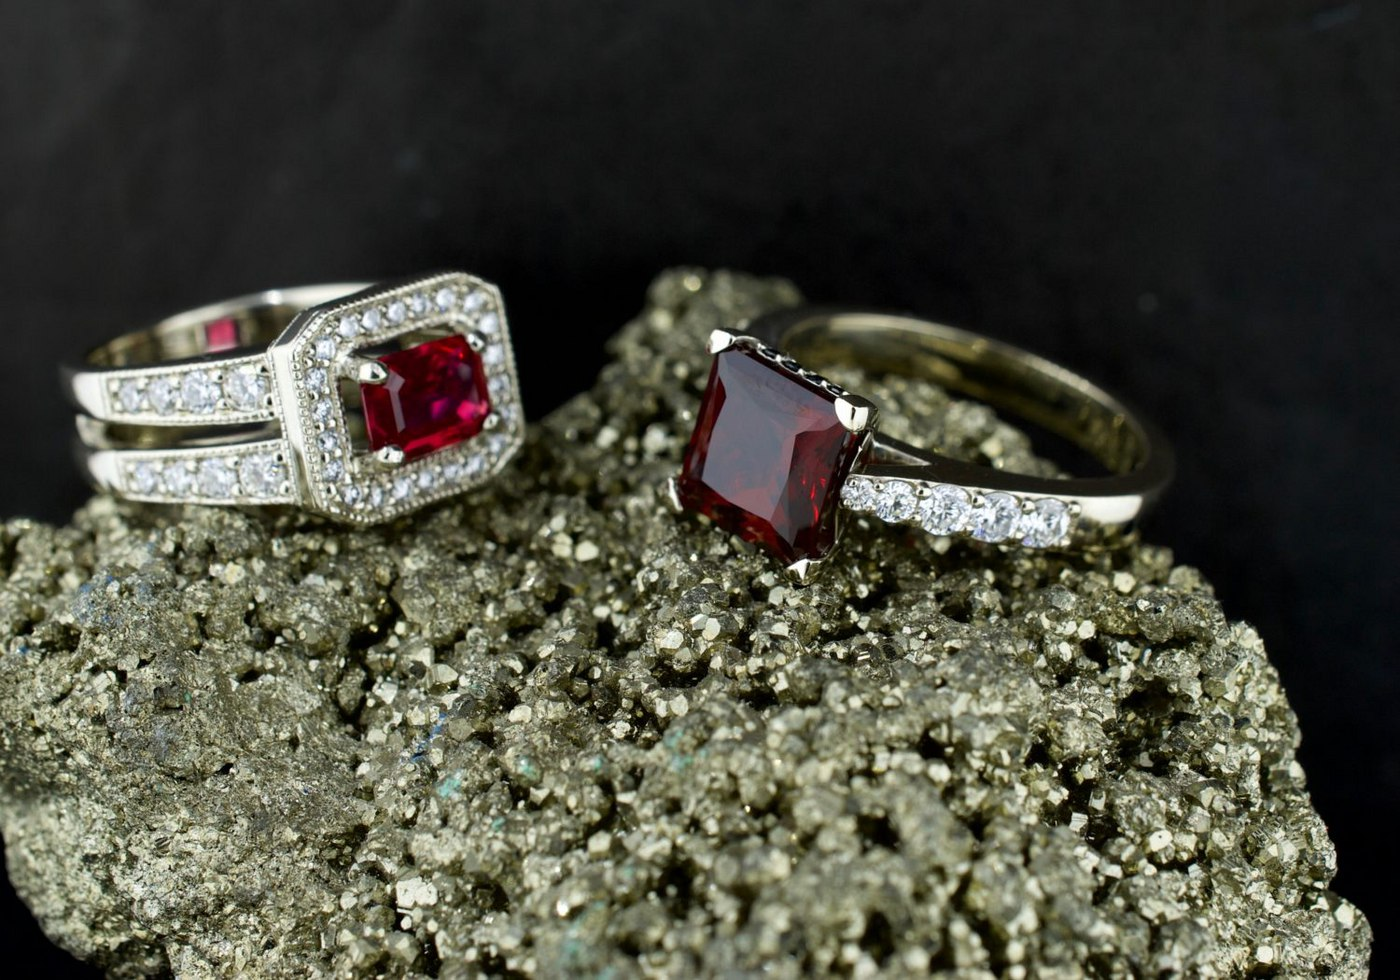 Ruby Engagement Rings: History, Meaning, Types, and Durability